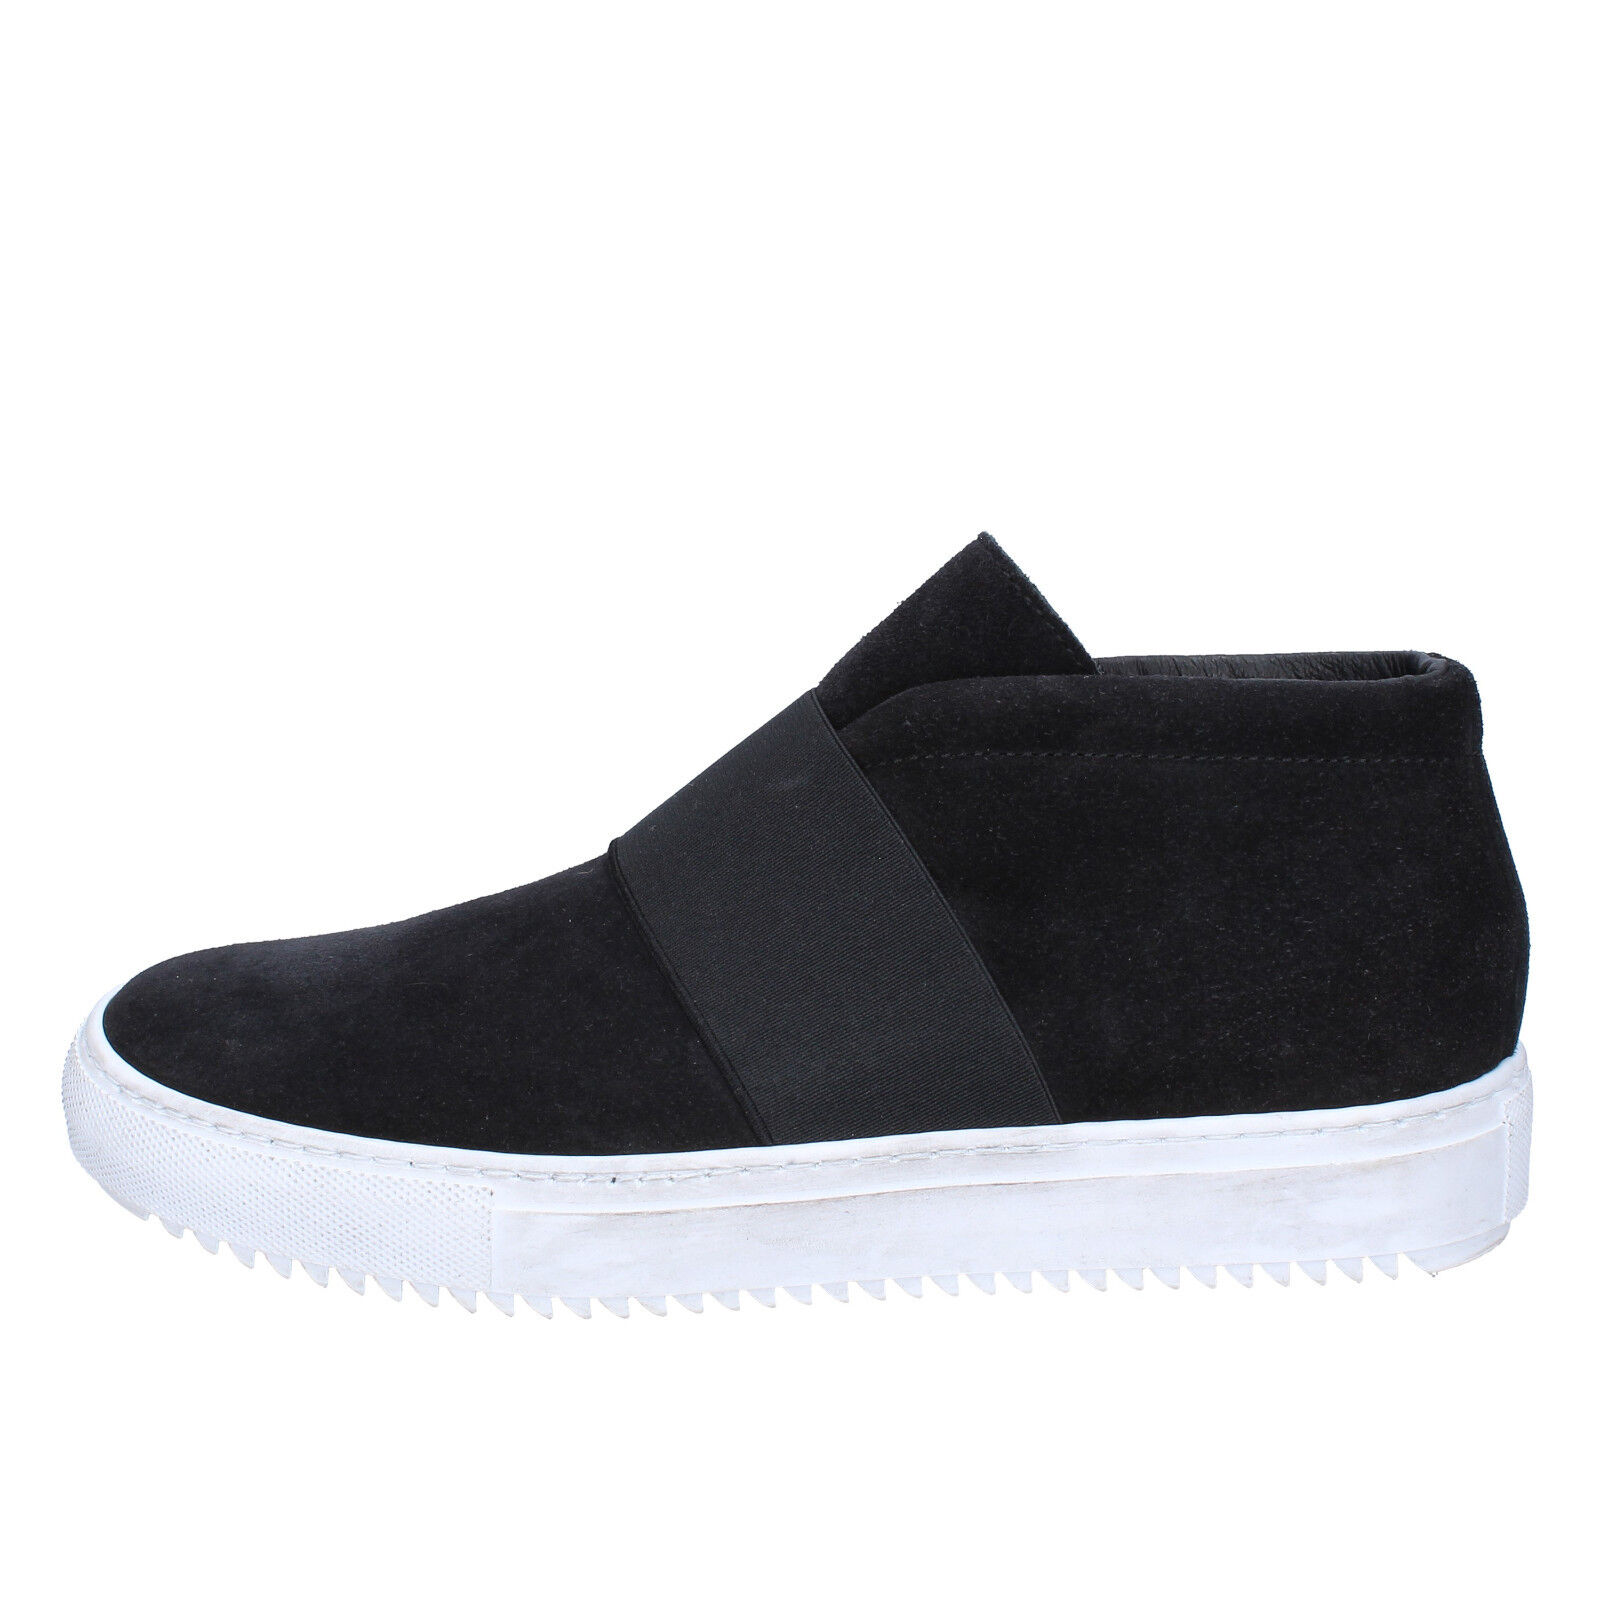 mens shoes ONELIO MODA sneakers BY CORAF 6 () sneakers MODA black suede textile BX447-40 367cb2